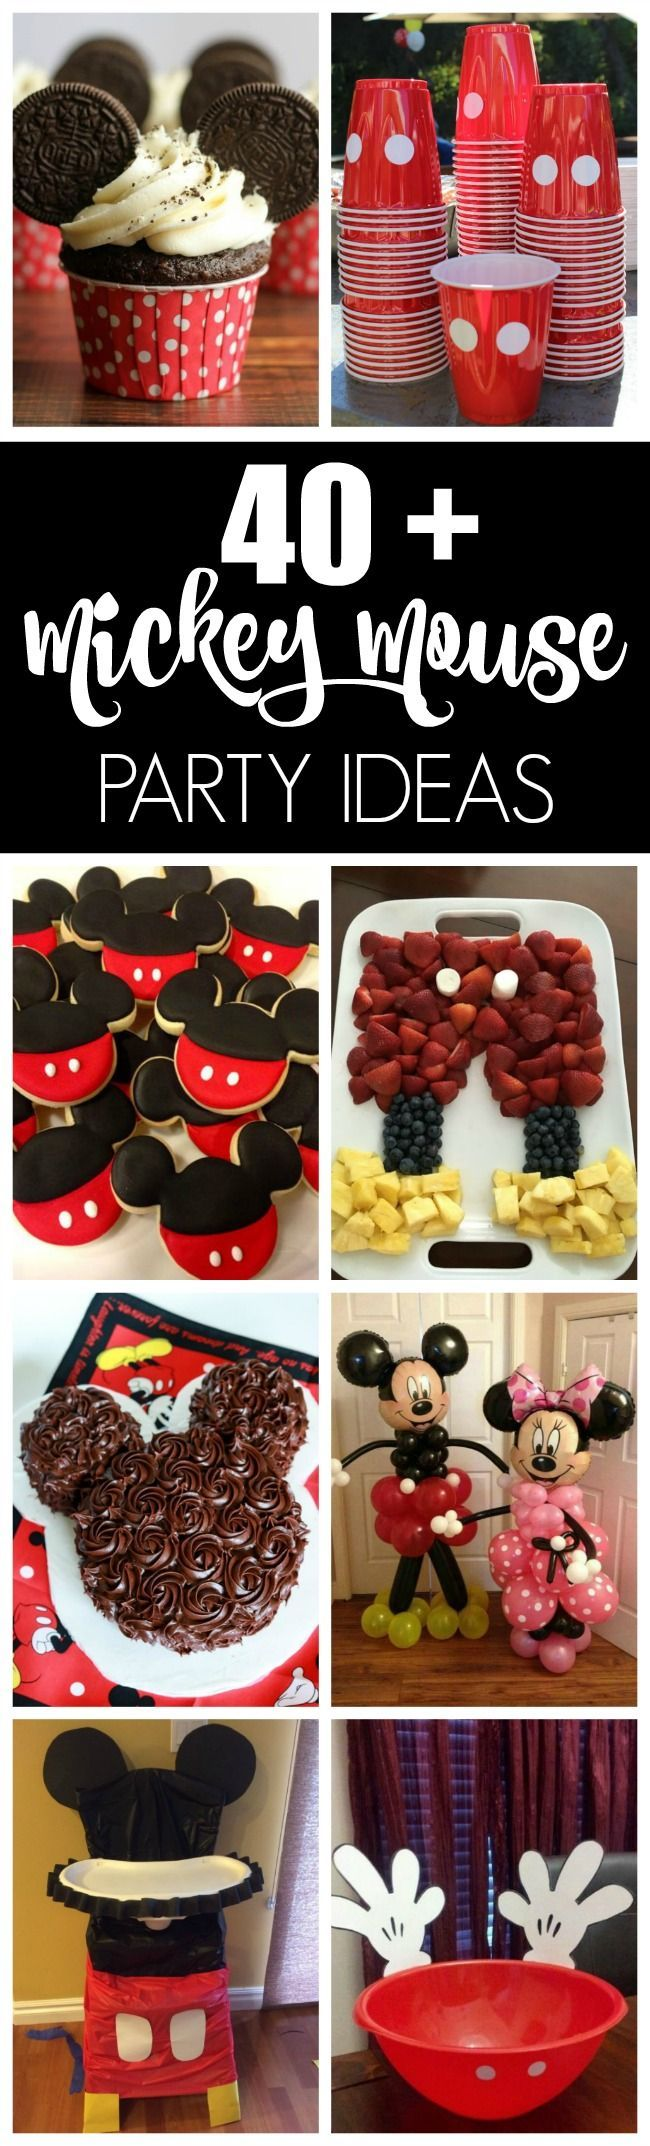 40+ Mickey Mouse Party Ideas | Pretty My Party. Tons of DIY ideas for the best Mickey party! (Cool Crafts For Birthdays)